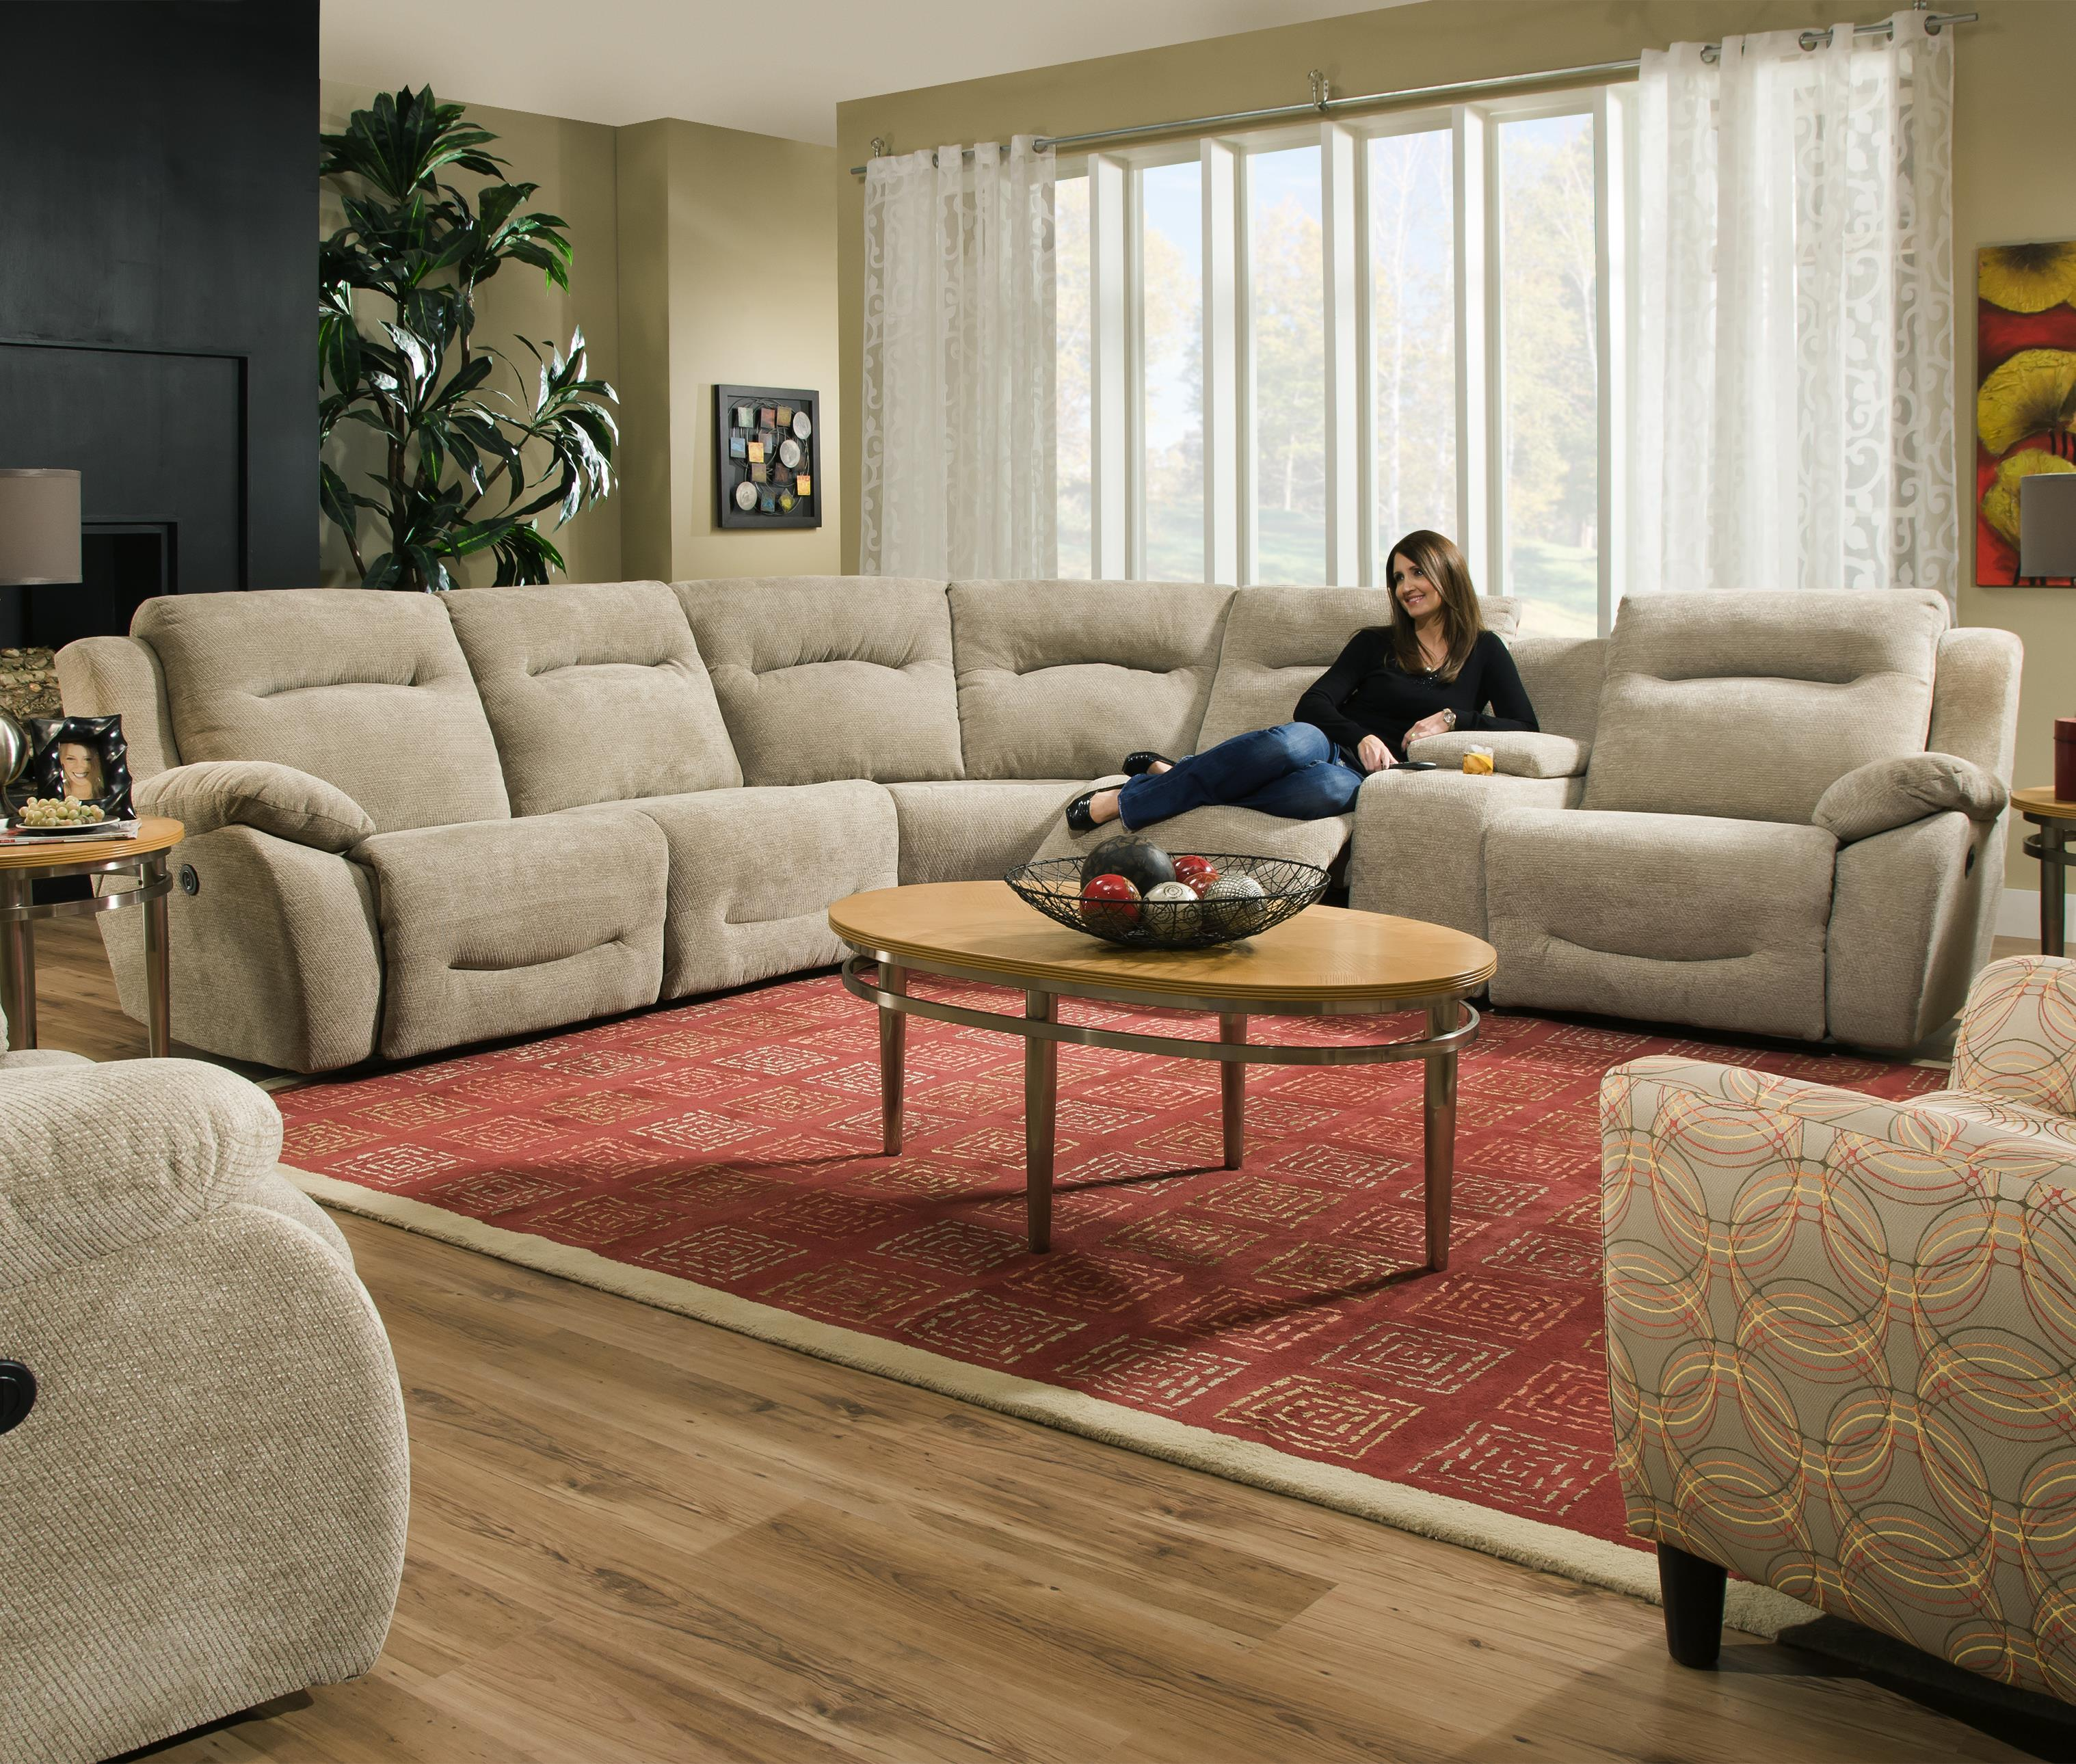 Southern Motion Eclipse Corner Shaped Reclining Sectional - Item Number: 566-07+92+84+92+47+08-231-15